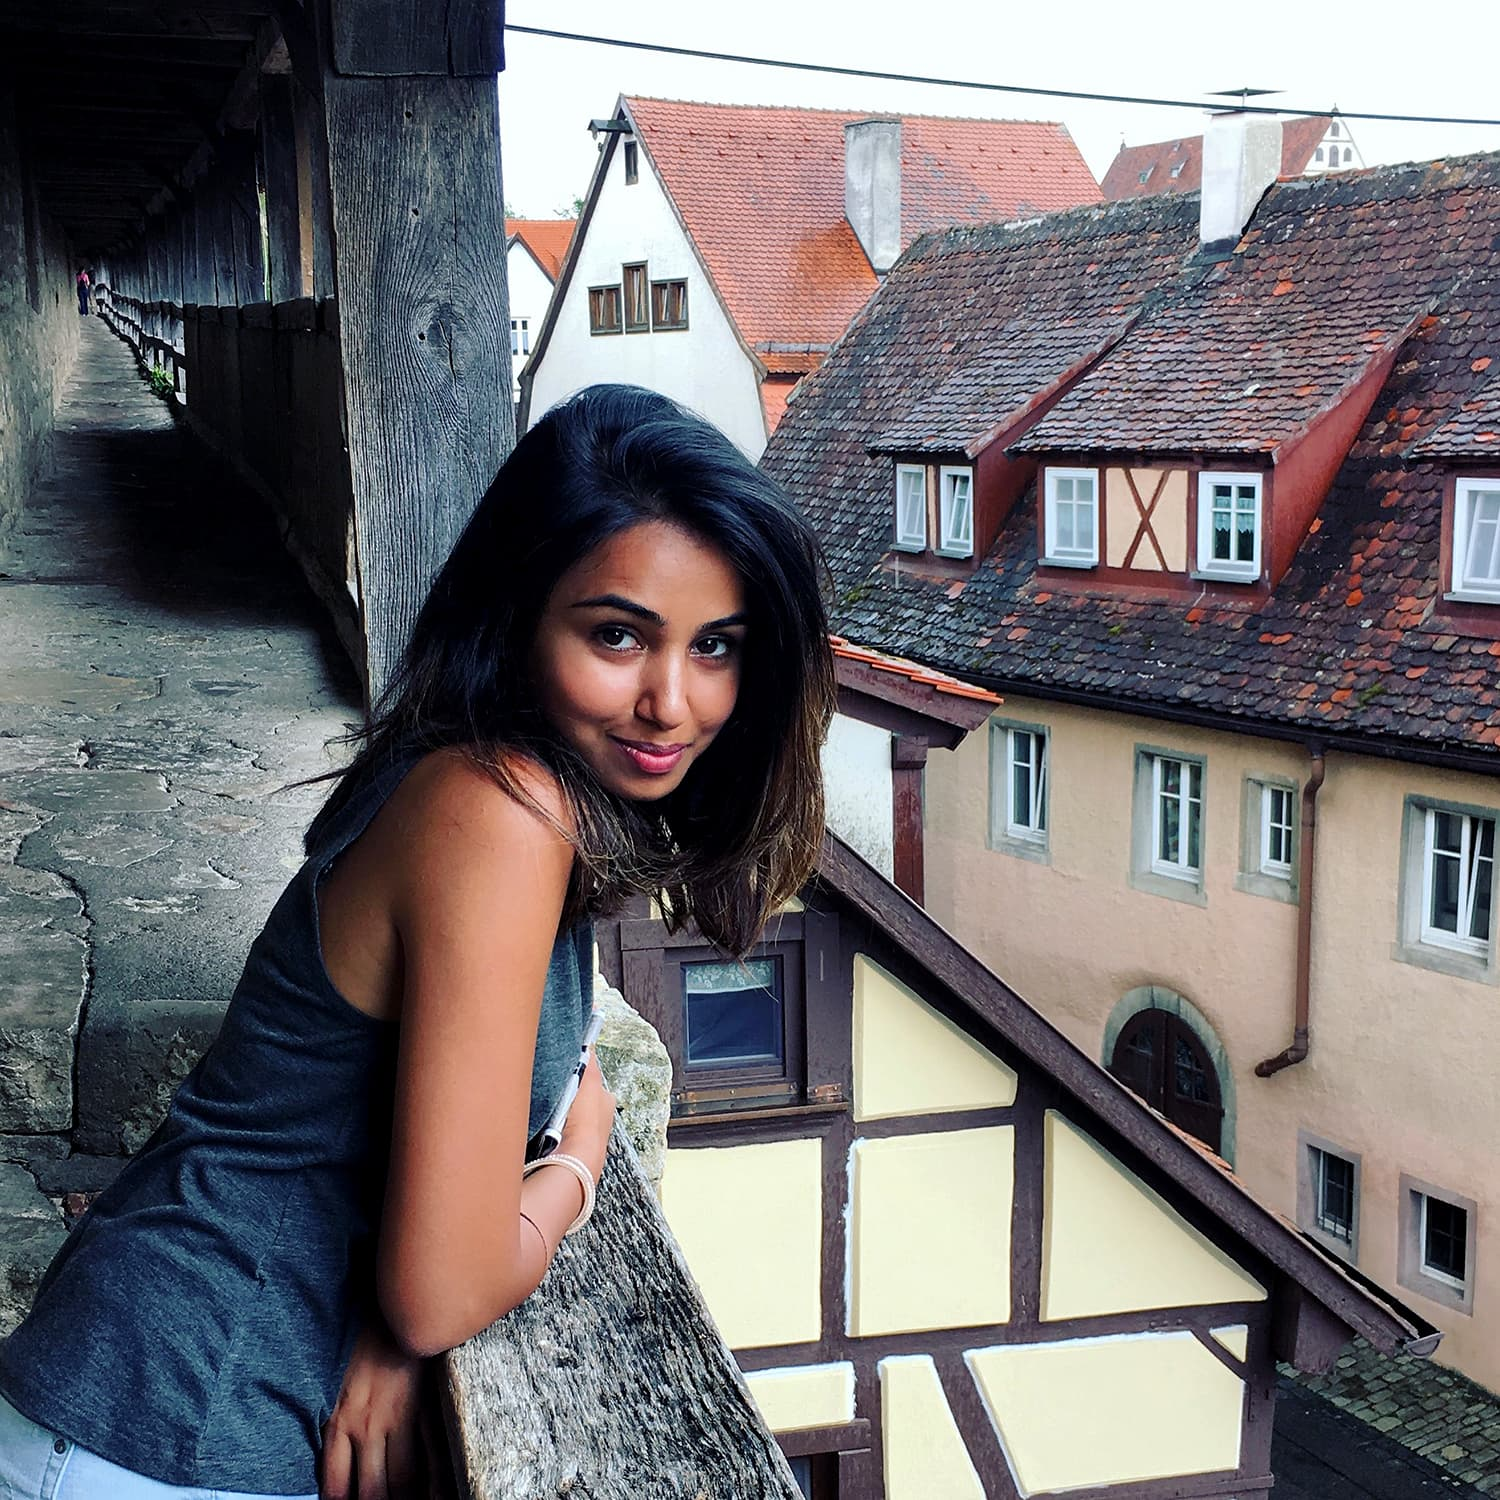 From a balcony in Rothenburg ob der Tauber, Germany.